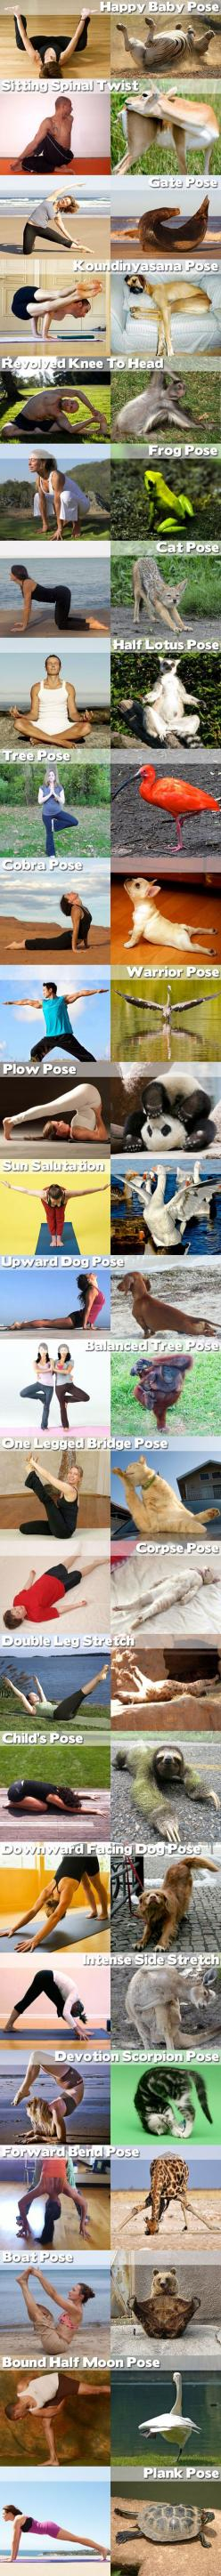 Funny Animal Yoga...i'm gonna have a really hard time keeping a straight face next class....: Animals, Funnies, Funny Animal, Things, Health, Animal Yoga, Workout